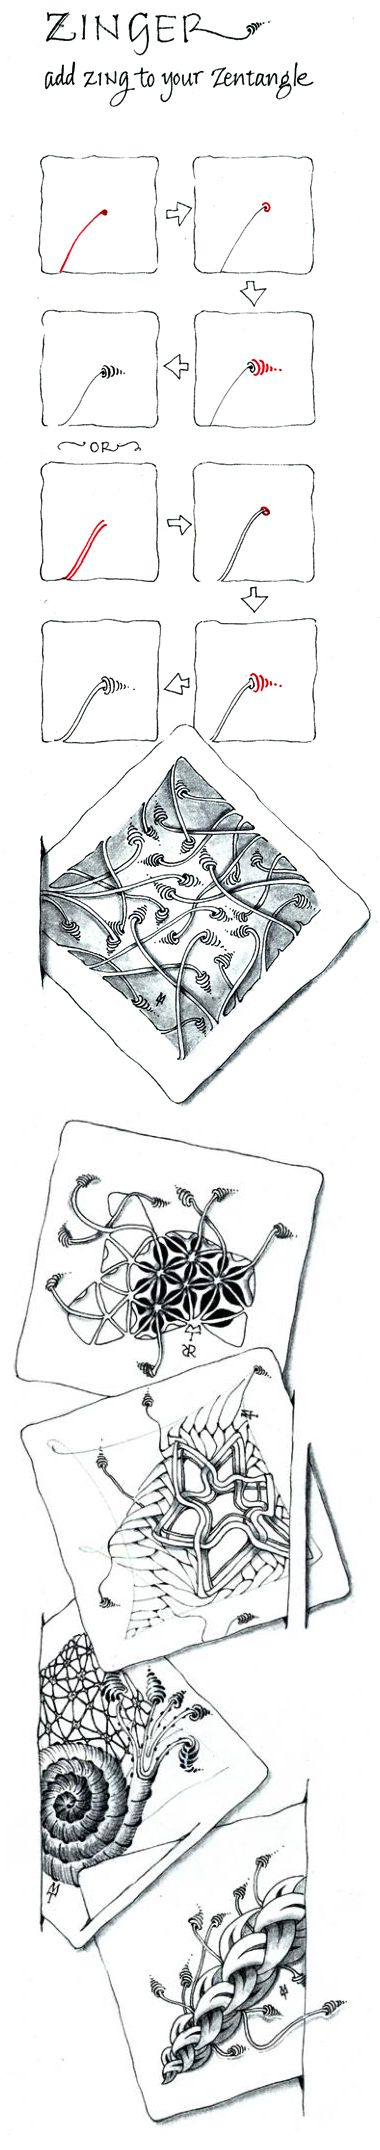 Zinger. official Zentangle with examples/variations.